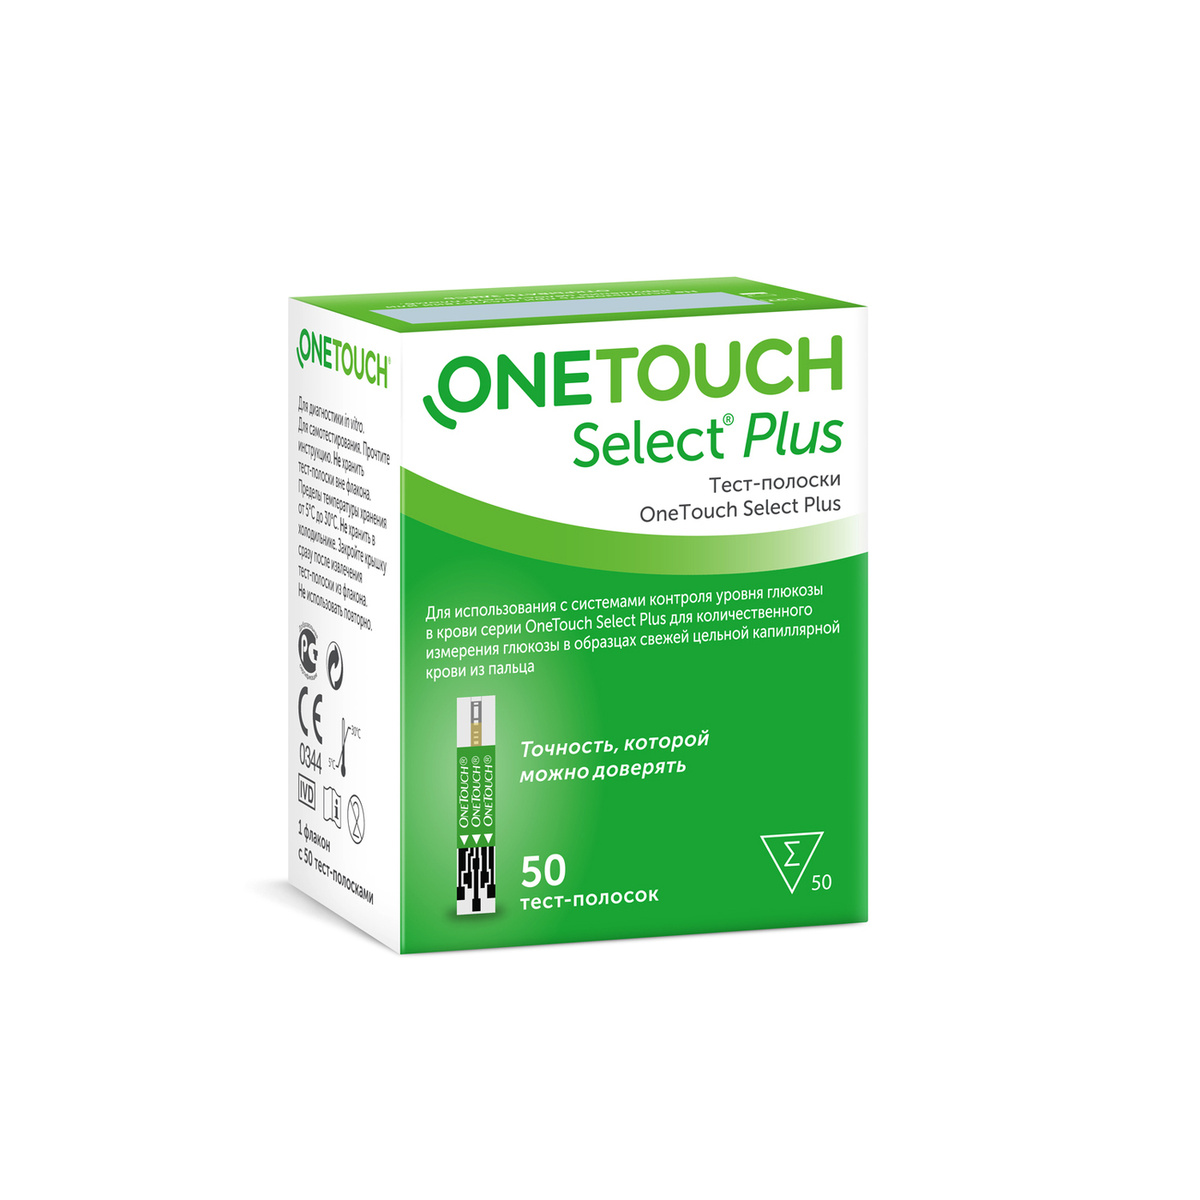 Тест-полоски ONETOUCH SELECT PLUS N50 #1